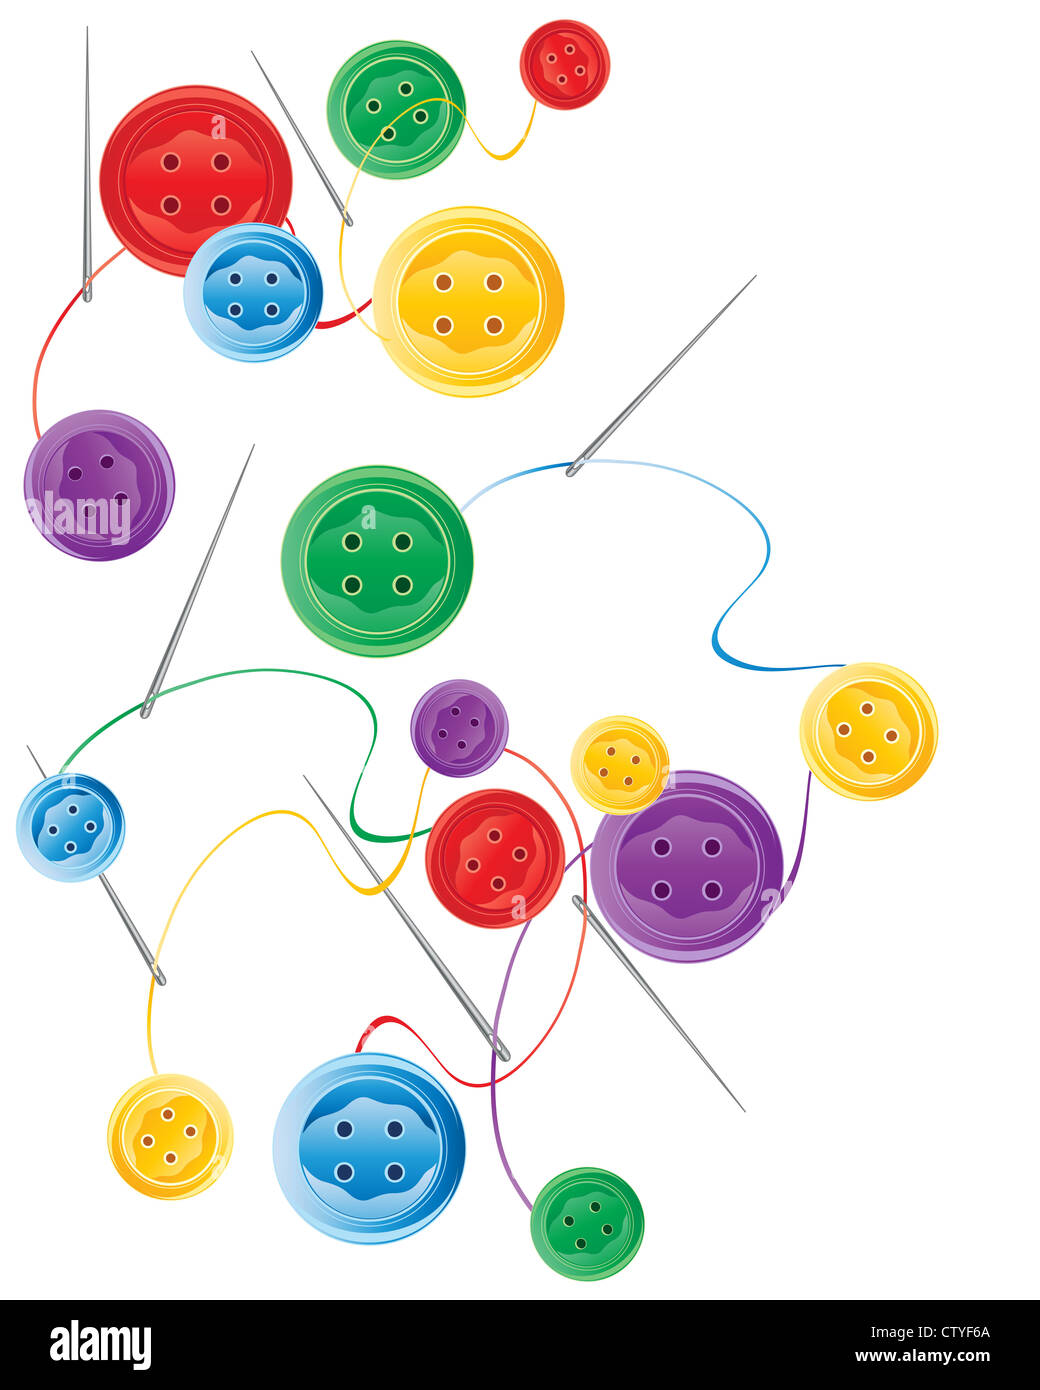 an illustration of colorful bright buttons with needles and thread scattered on a white background - Stock Image